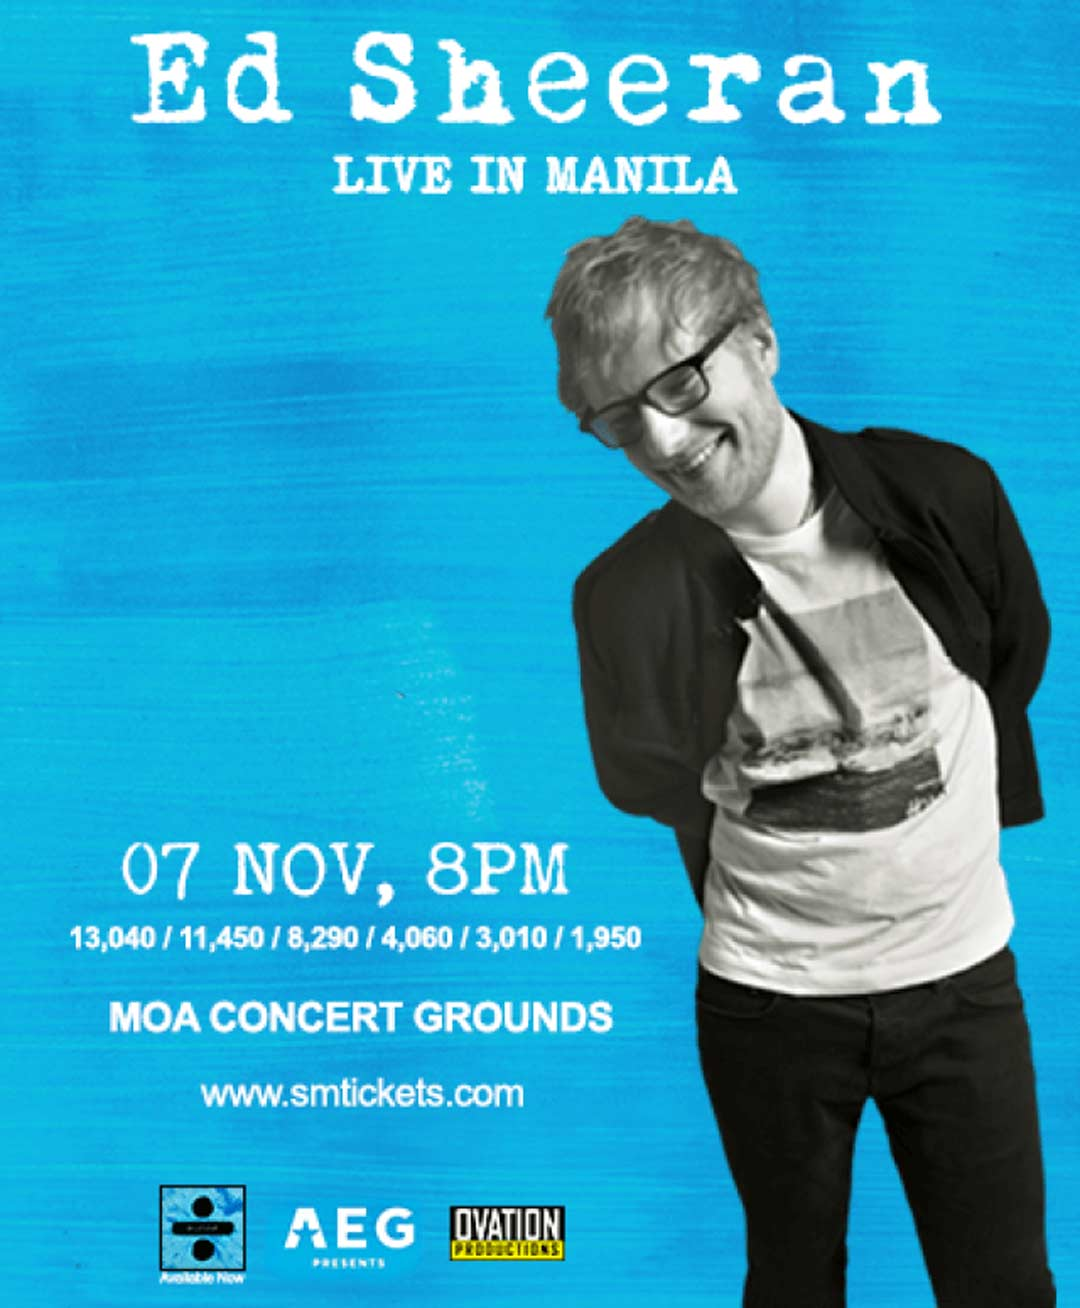 Poster for Ed Sheeran's concert in Manila this 2018.